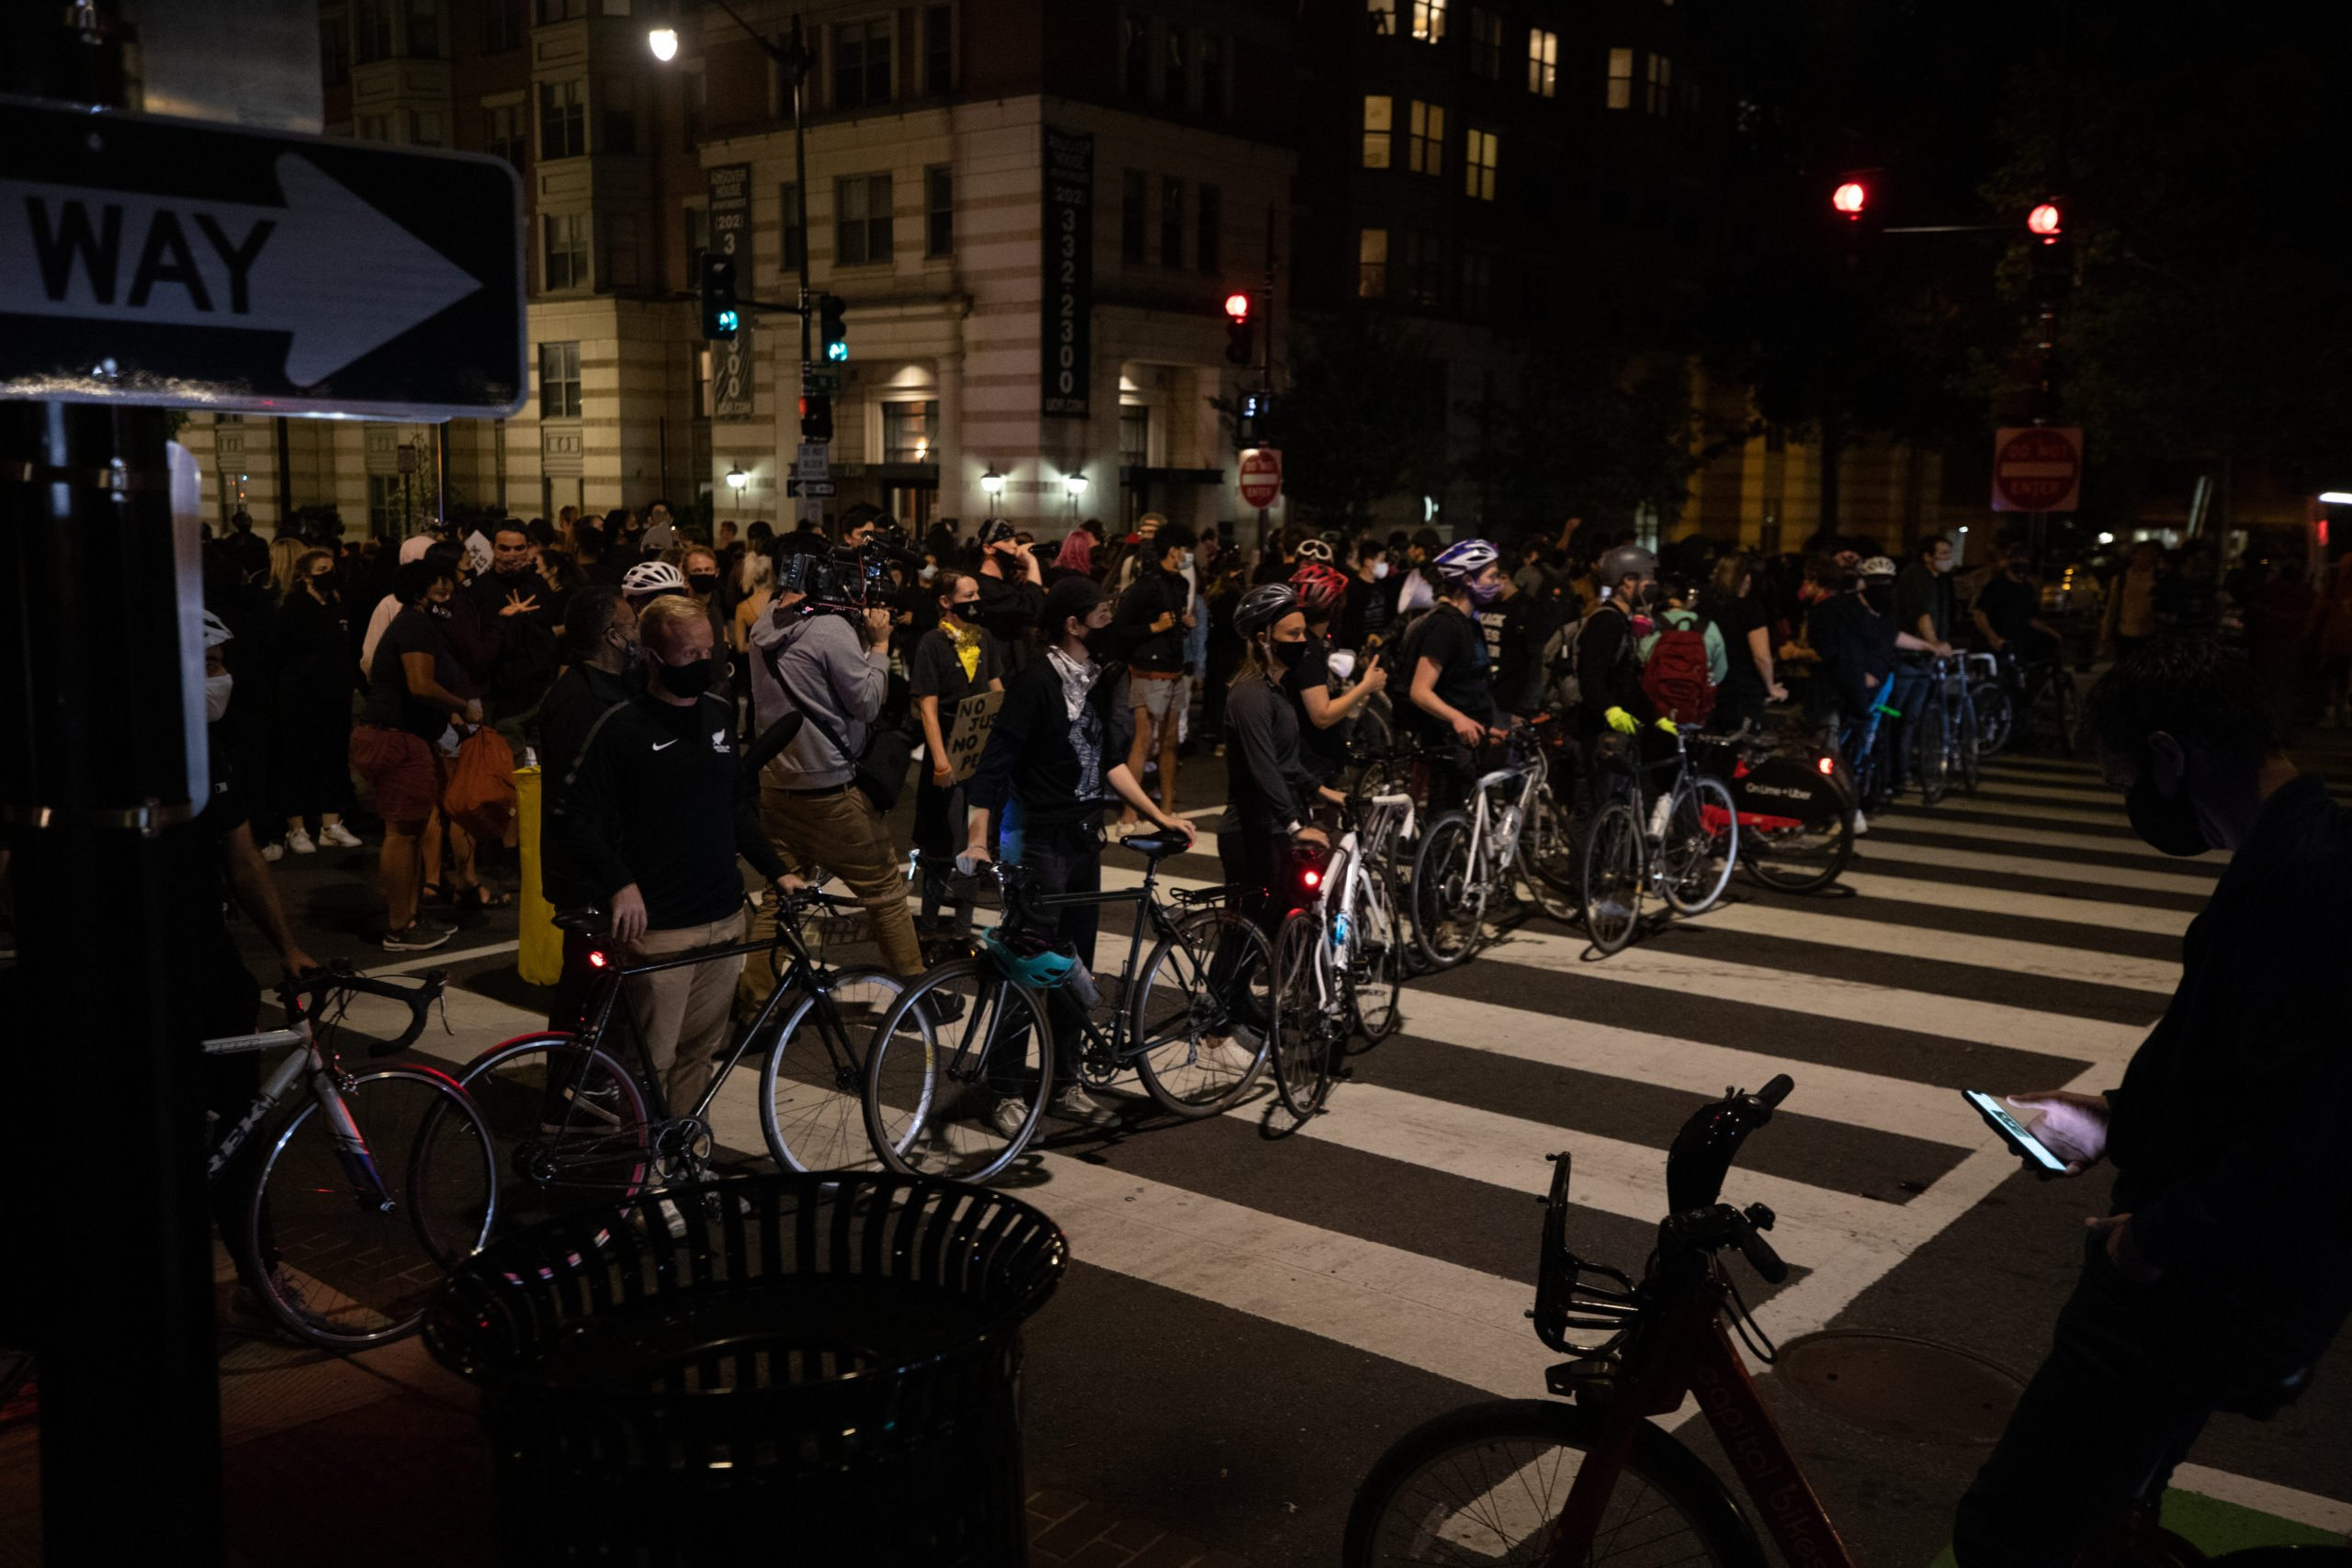 Protesters formed their own bike line to keep Metropolitan Police Officers from getting too close to people on foot in Washington, D.C. on Sept. 23. (Photo: Kaylee Greenlee / DCNF)